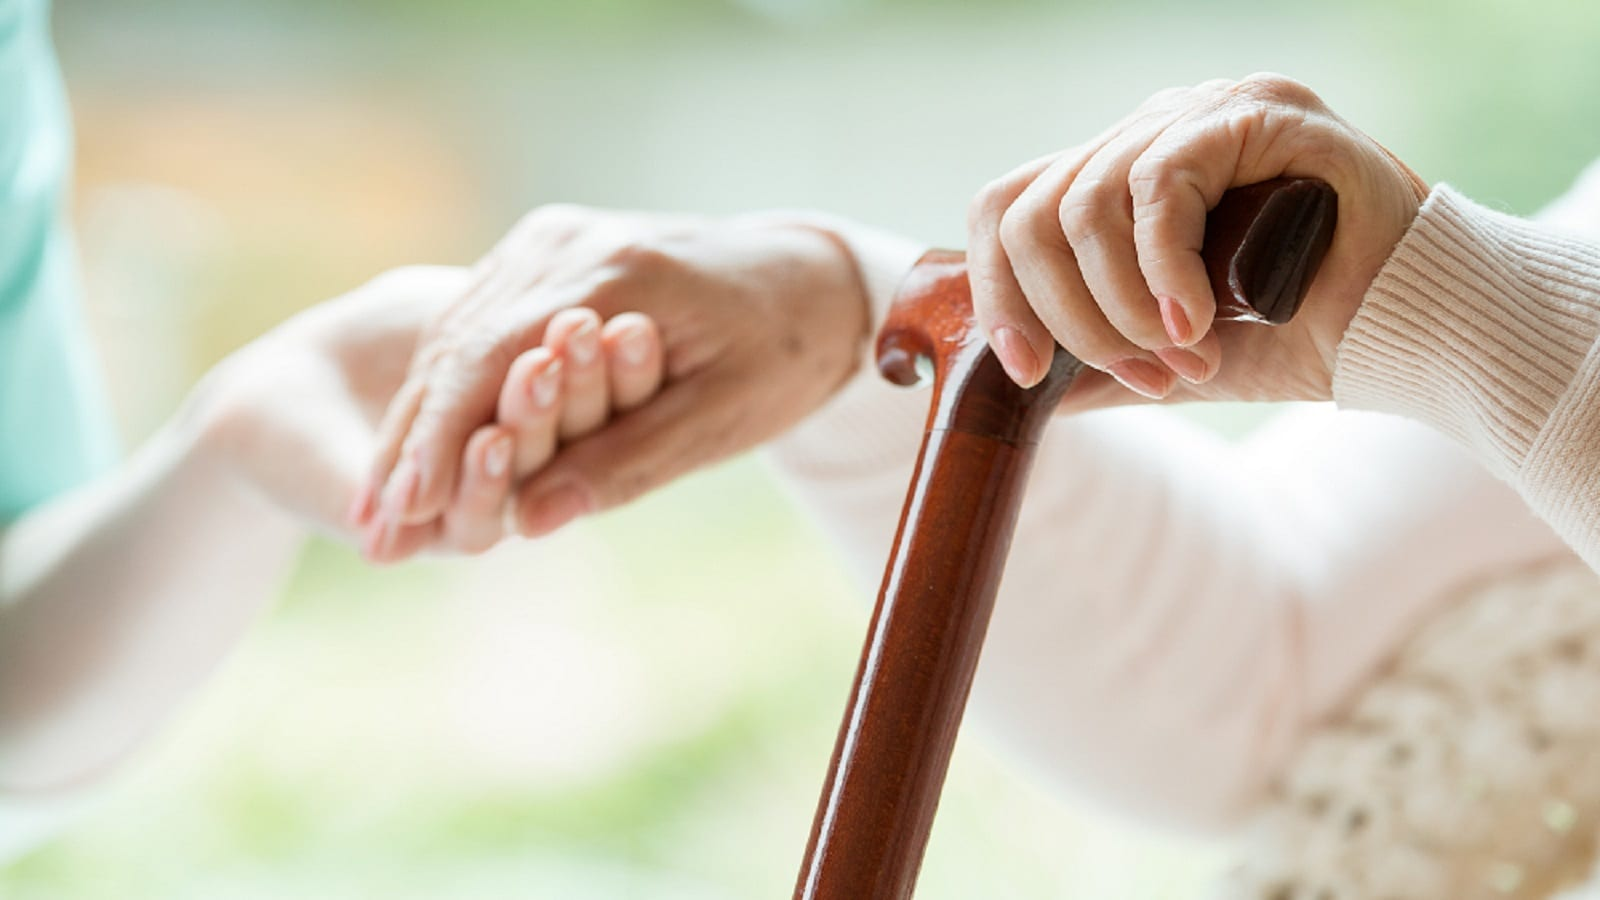 Nurse Helping Elderly Woman With Cane Stock Photo